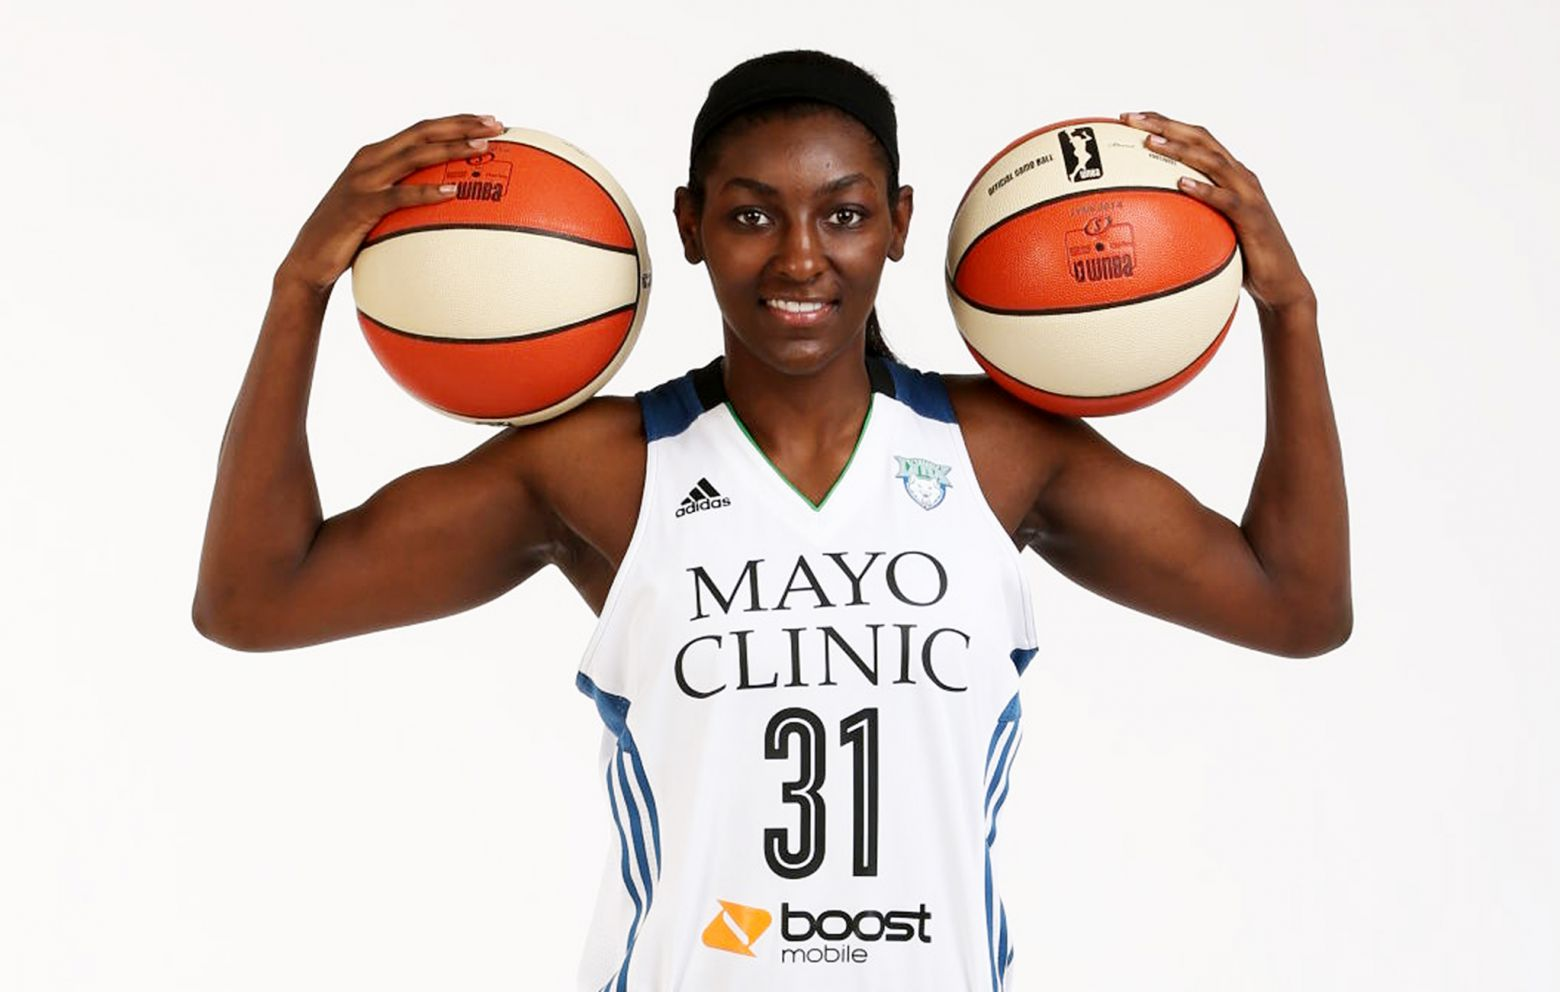 ASIA TAYLOR has signed with Explosivas de Moca for the Puerto Rico Playoffs